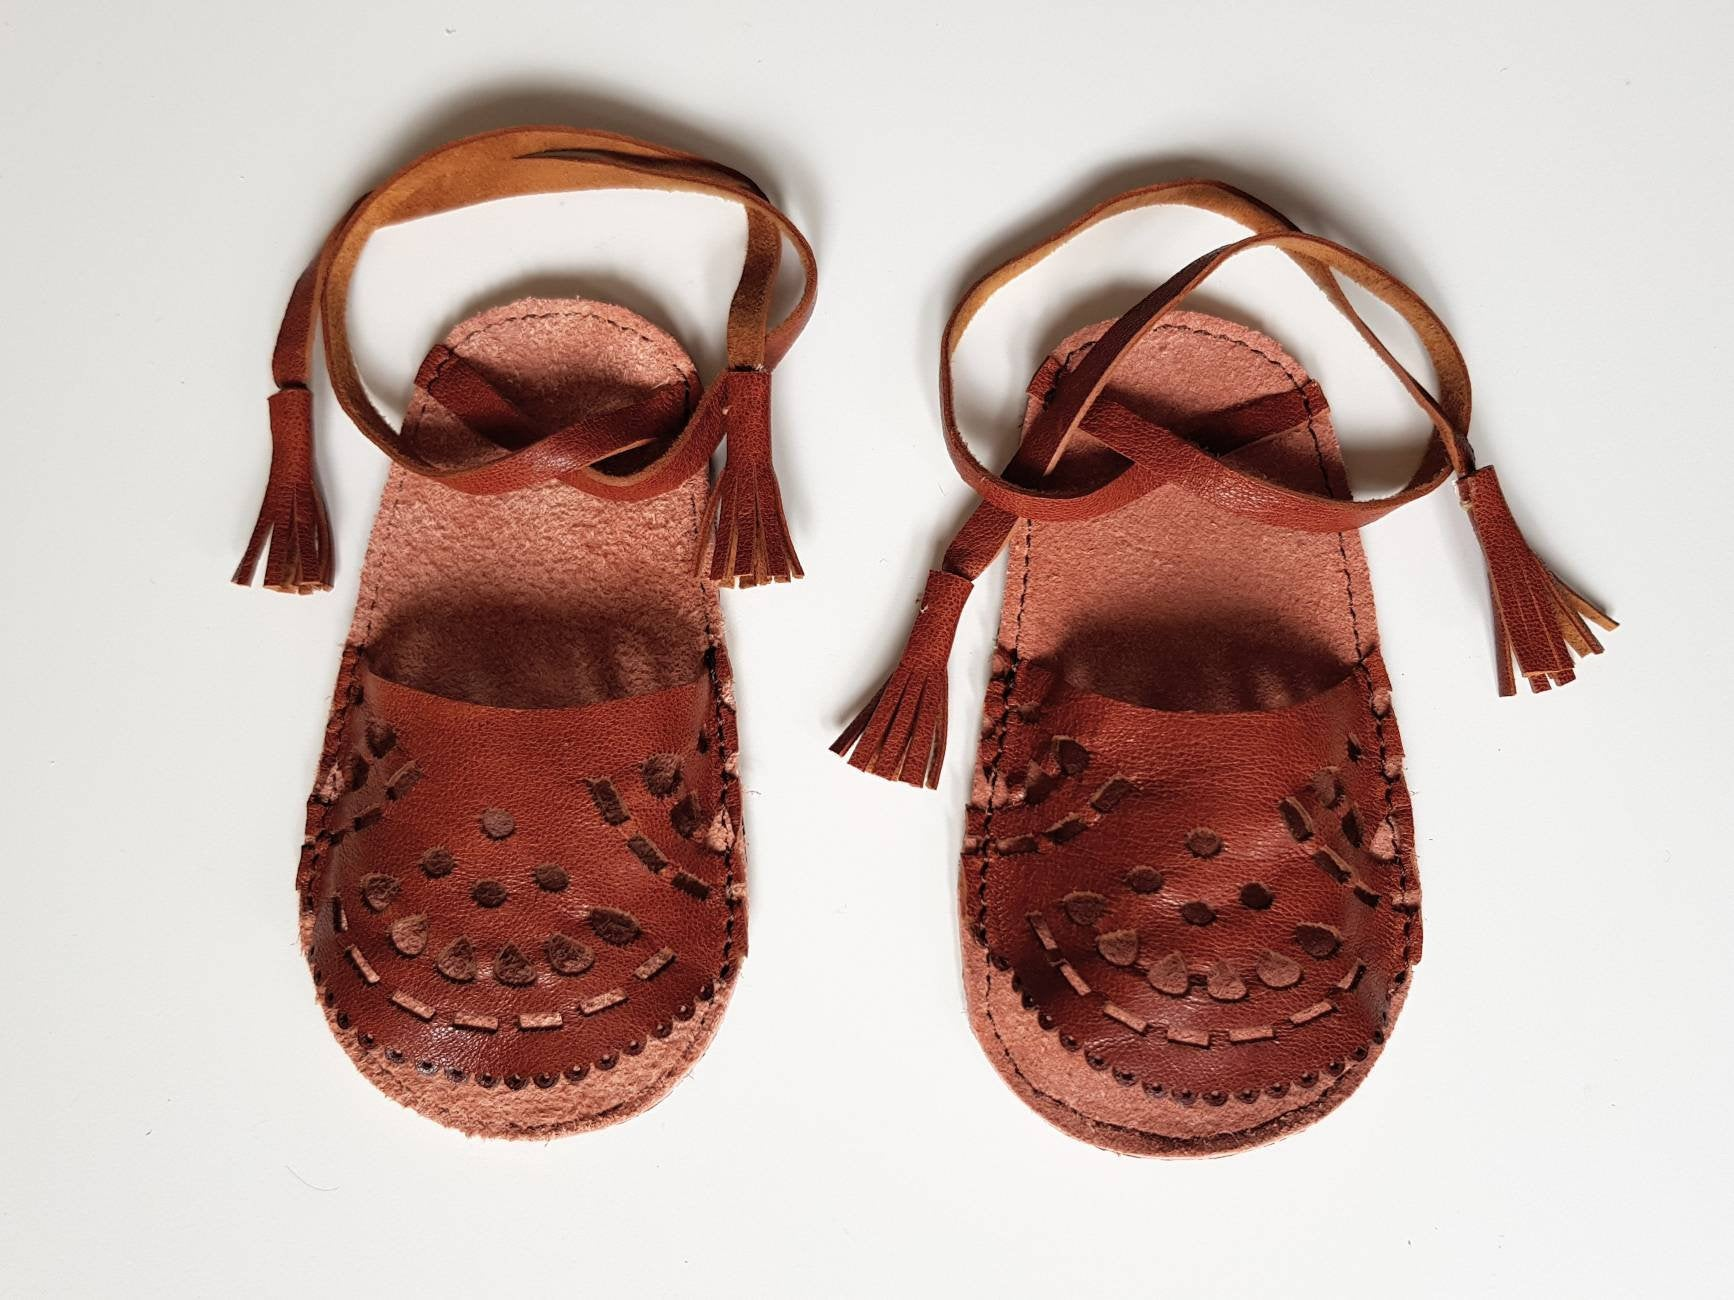 58c9fe0d53e2 Leather Baby girl sandals - Mika   Meia